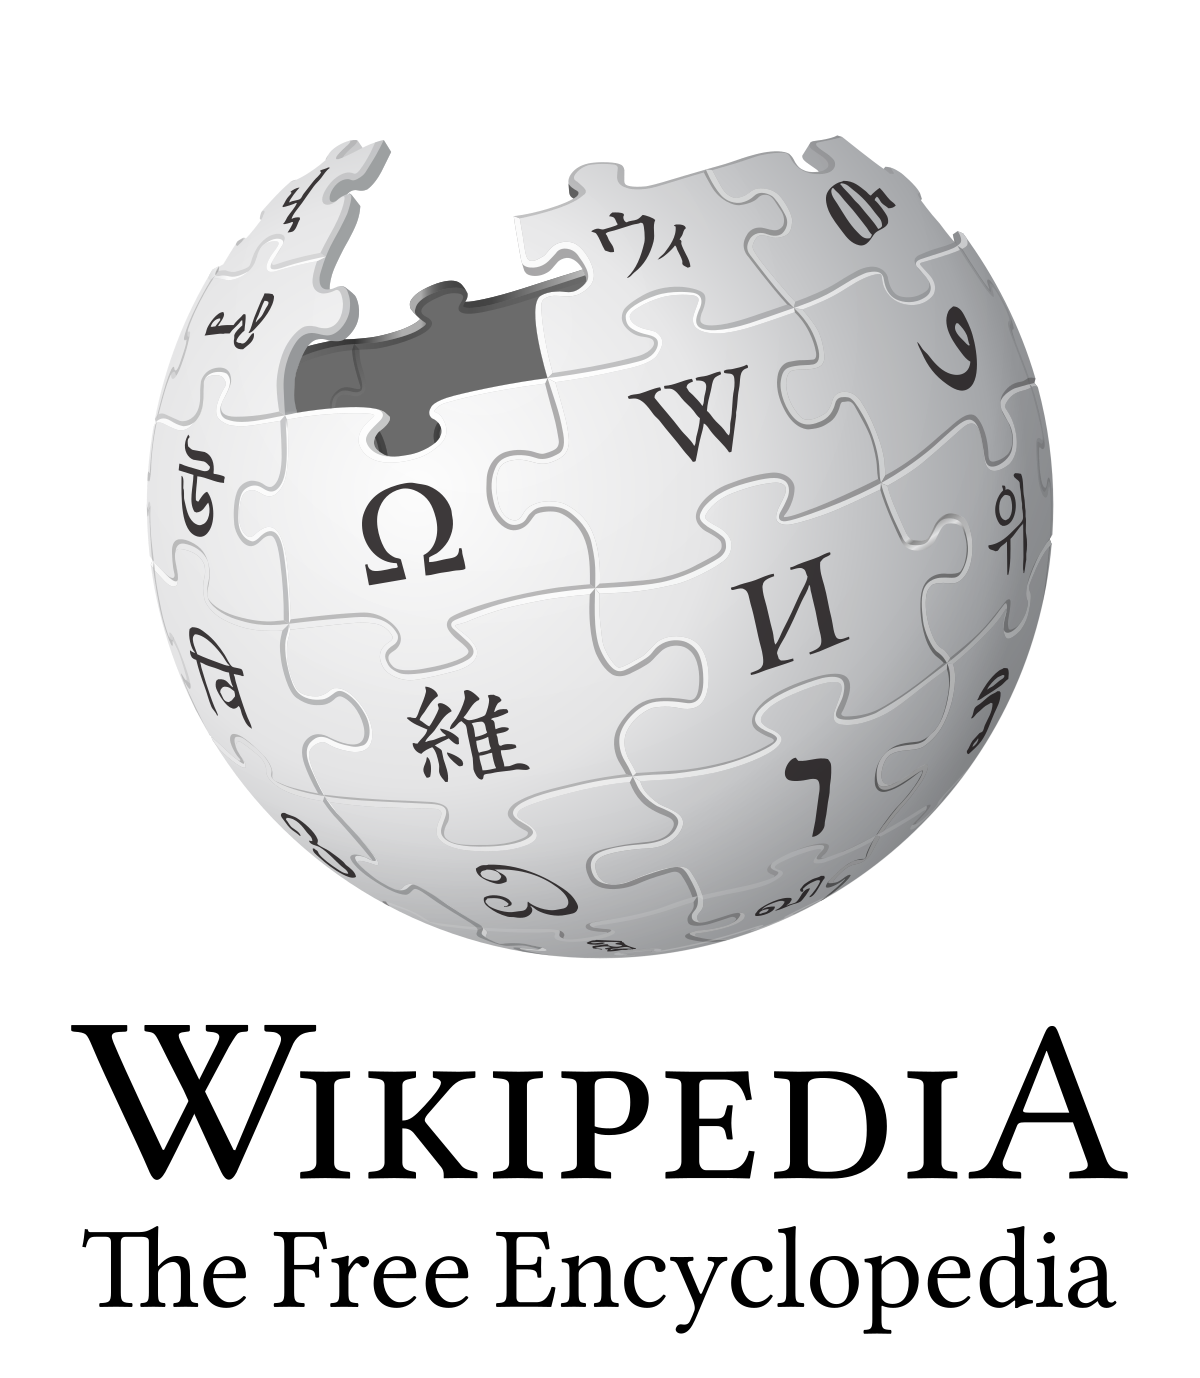 Logo of the English Wikipedia, the website came online Jan 15, 2001.